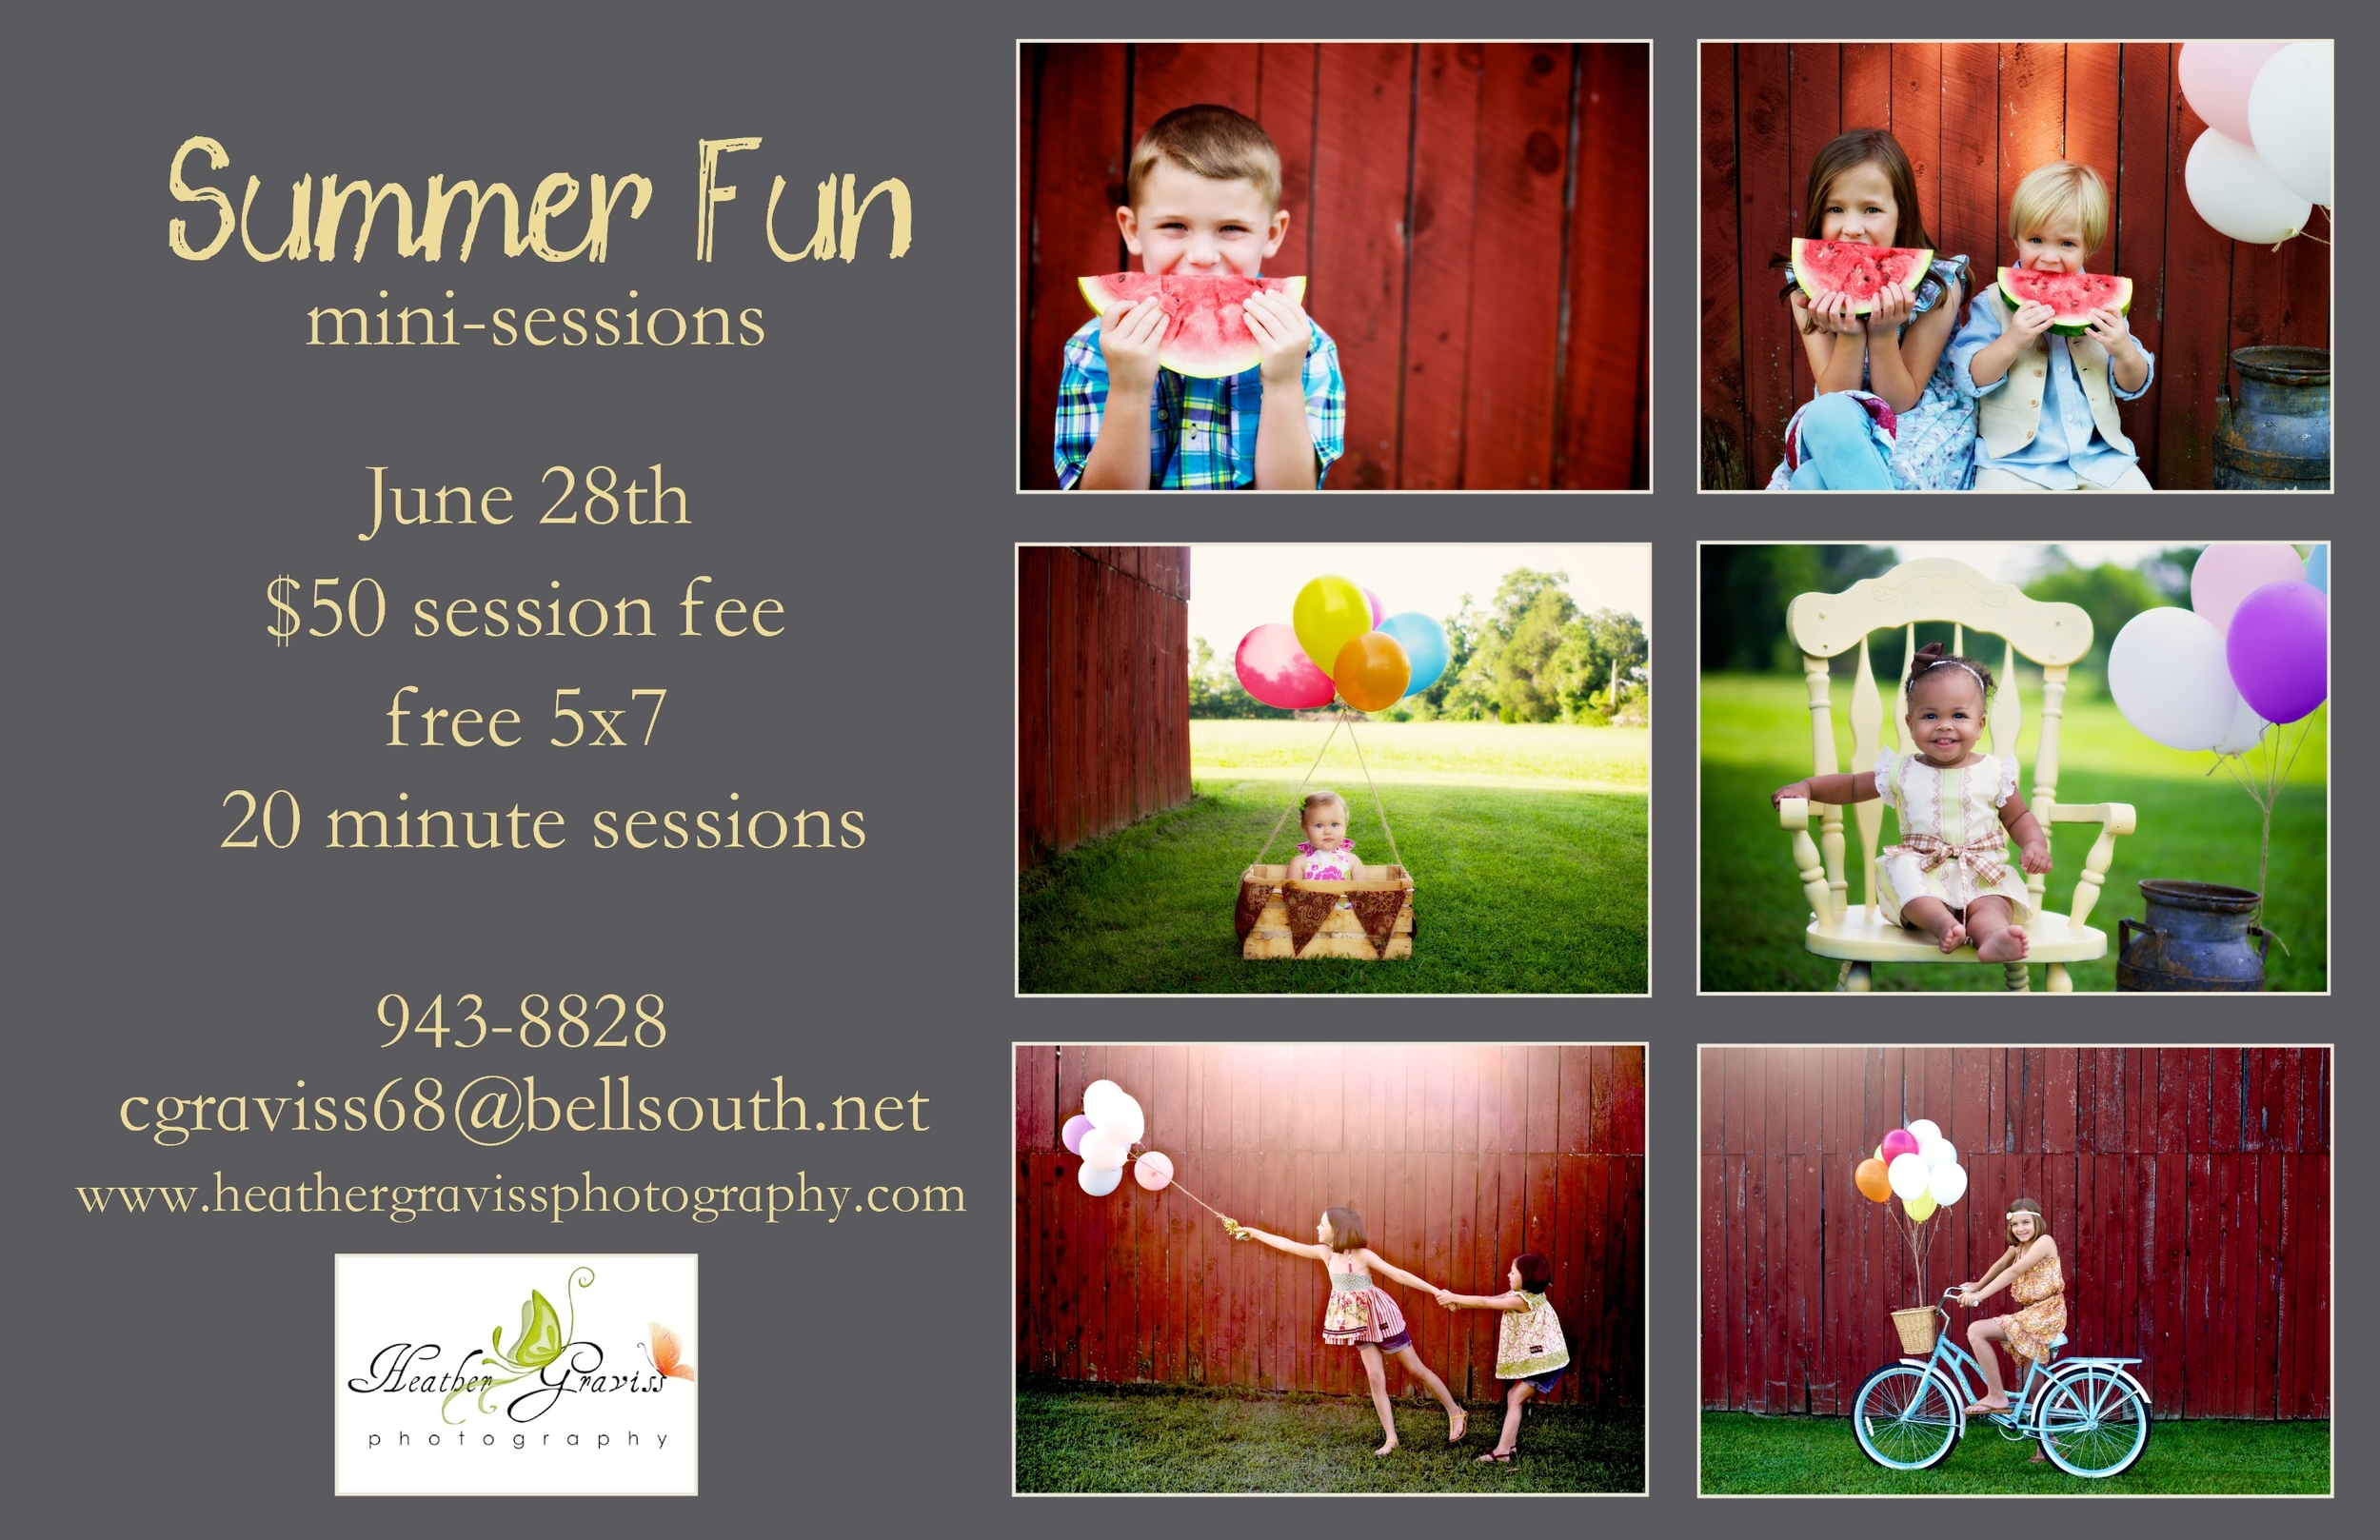 summer fun mini-sessions